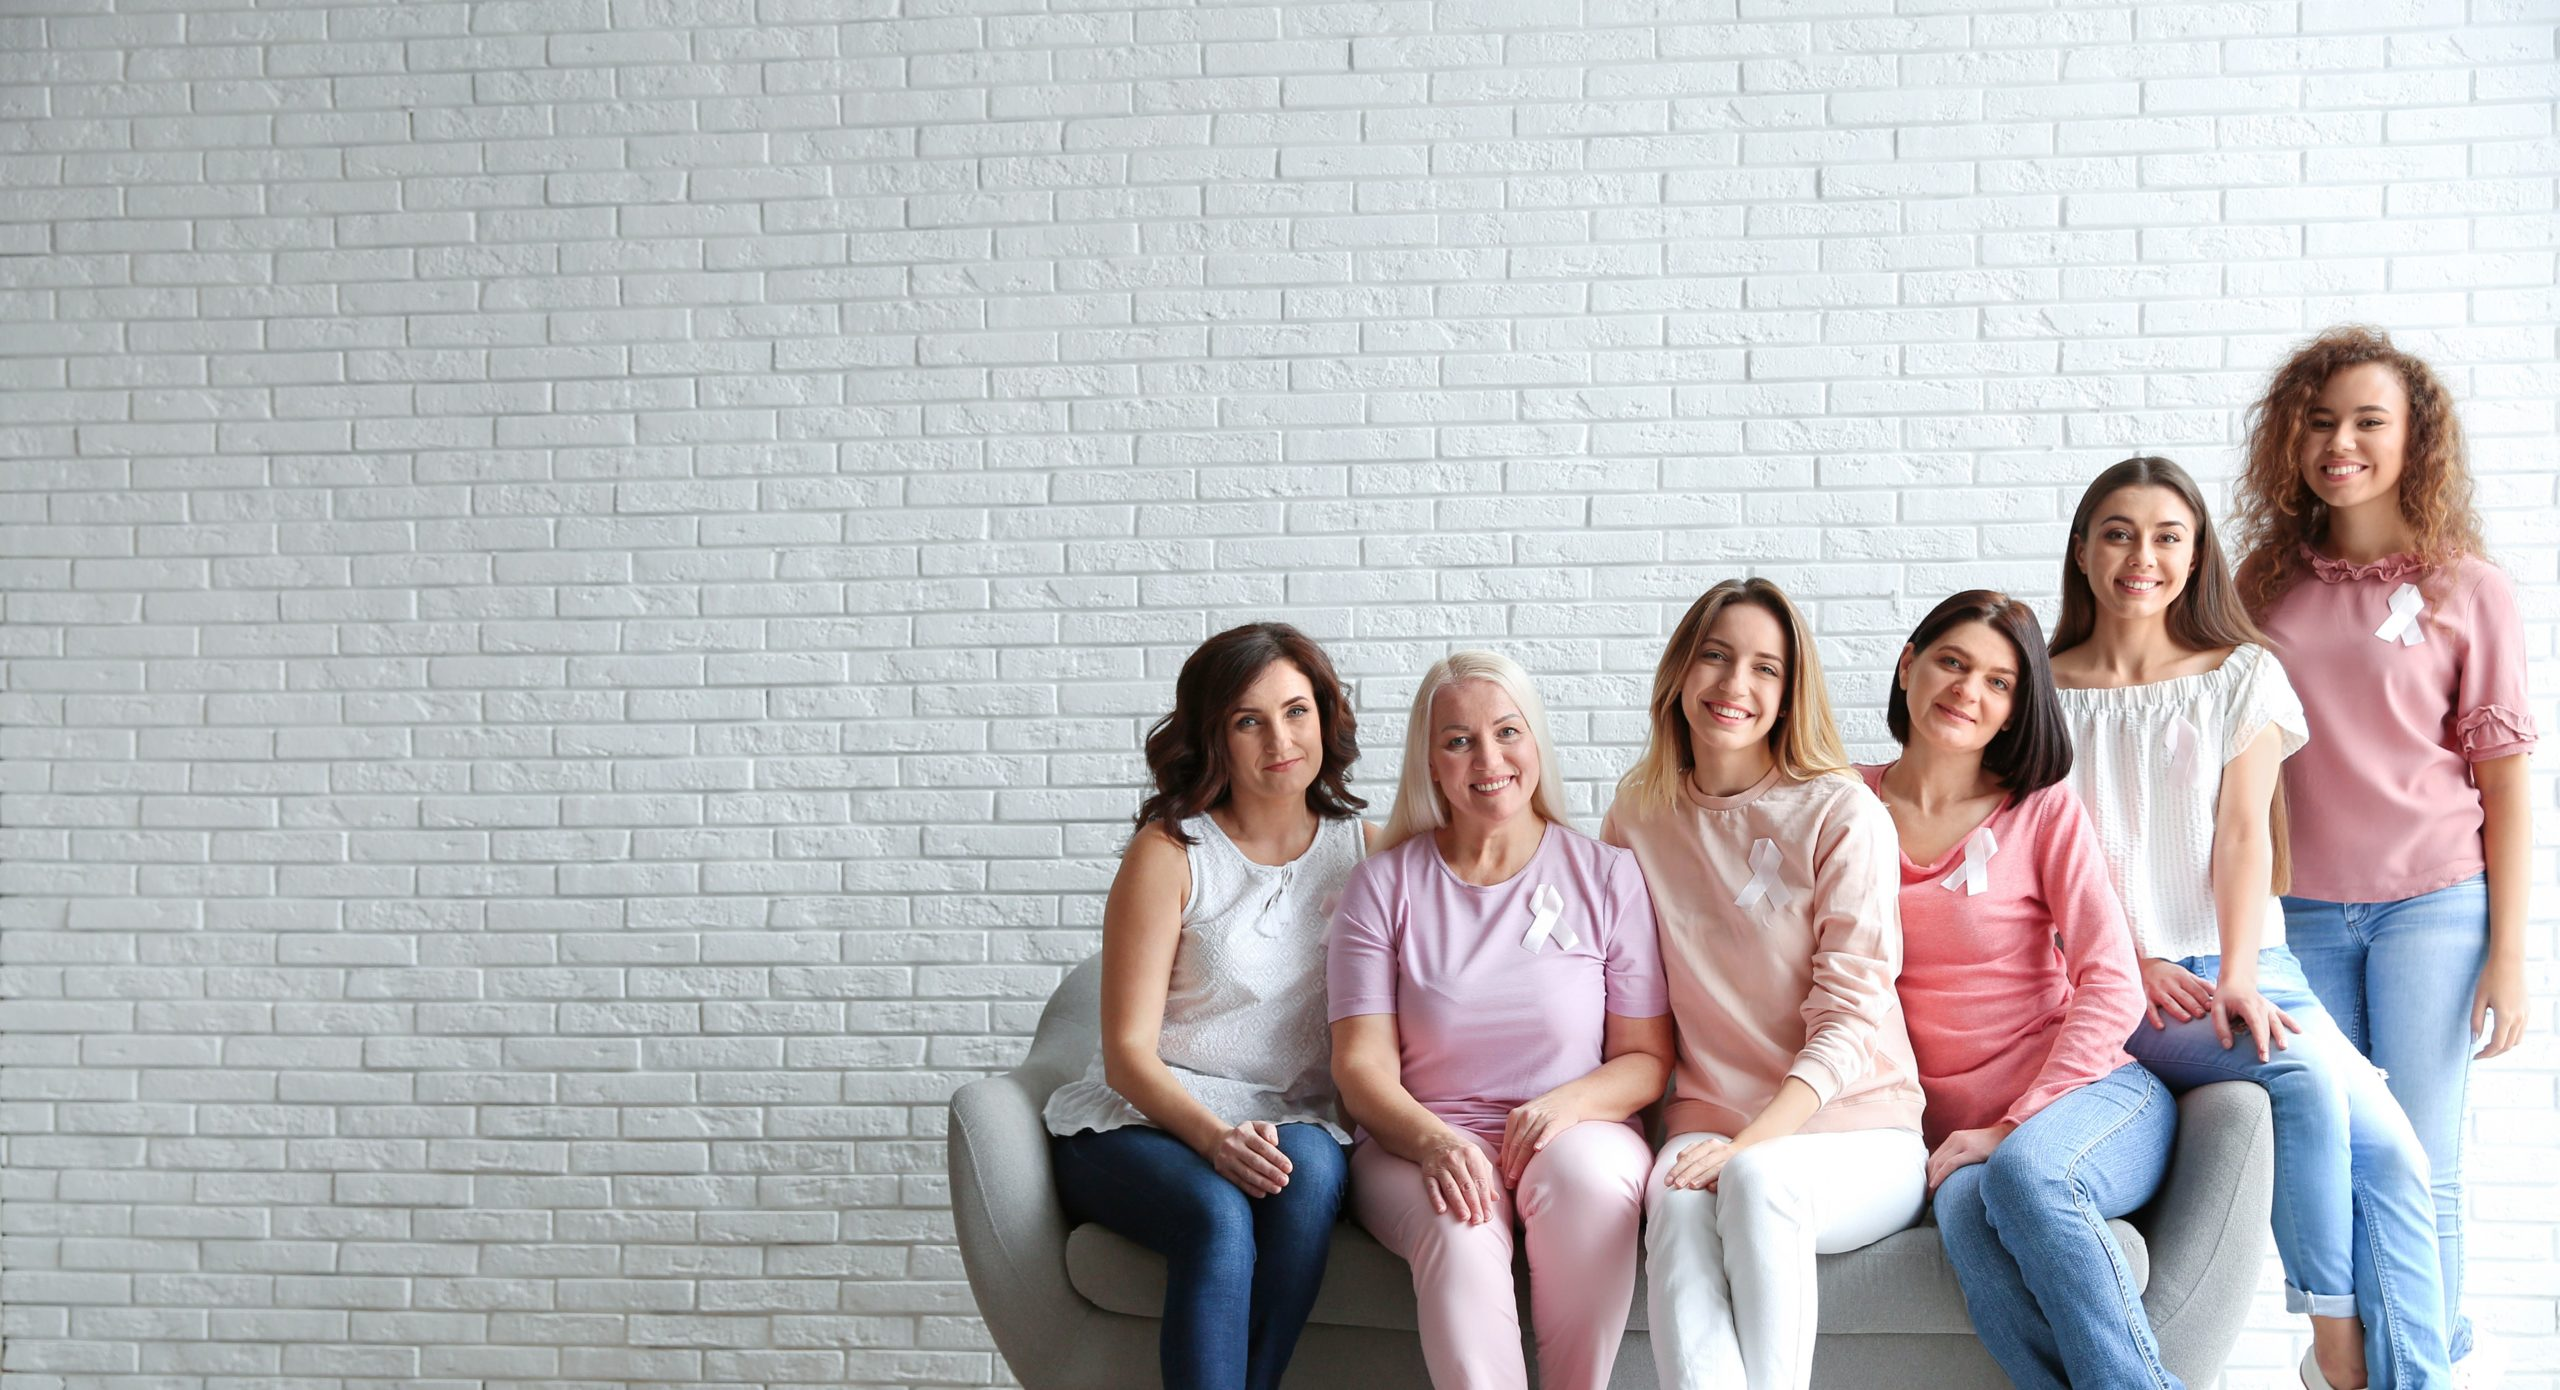 Breast Cancer Awareness Month: 37 reasons not to lose hope